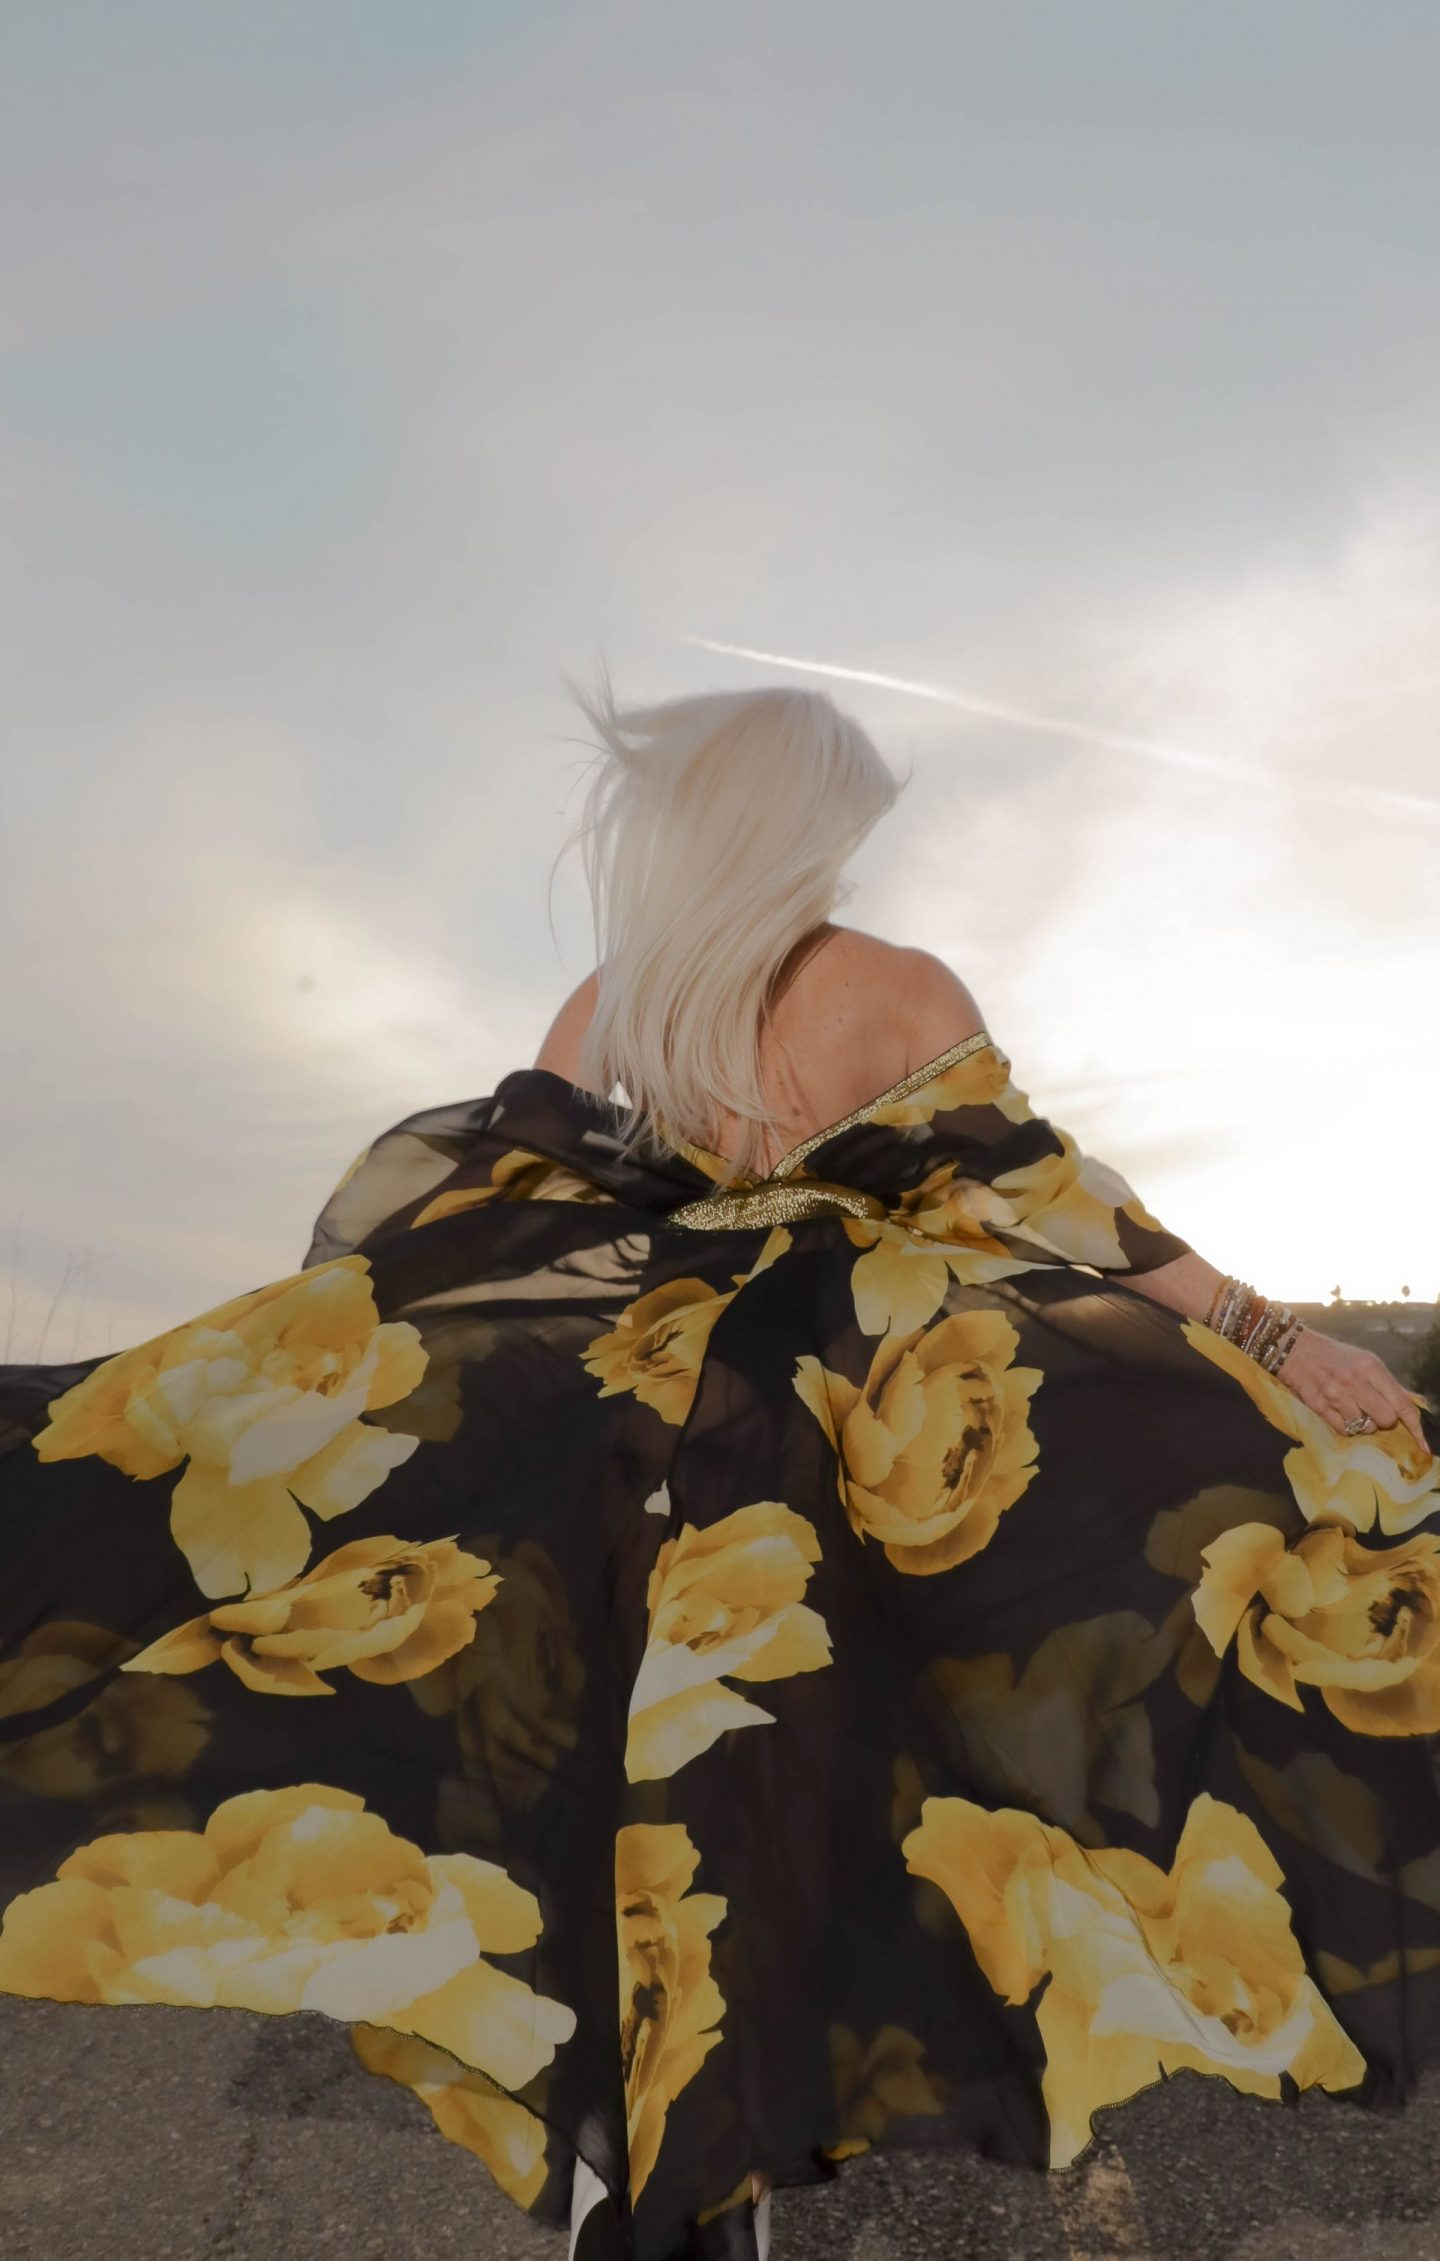 mental health blog post, embracing turning 60, silver haired model, inclusive model, yellow and black print dress